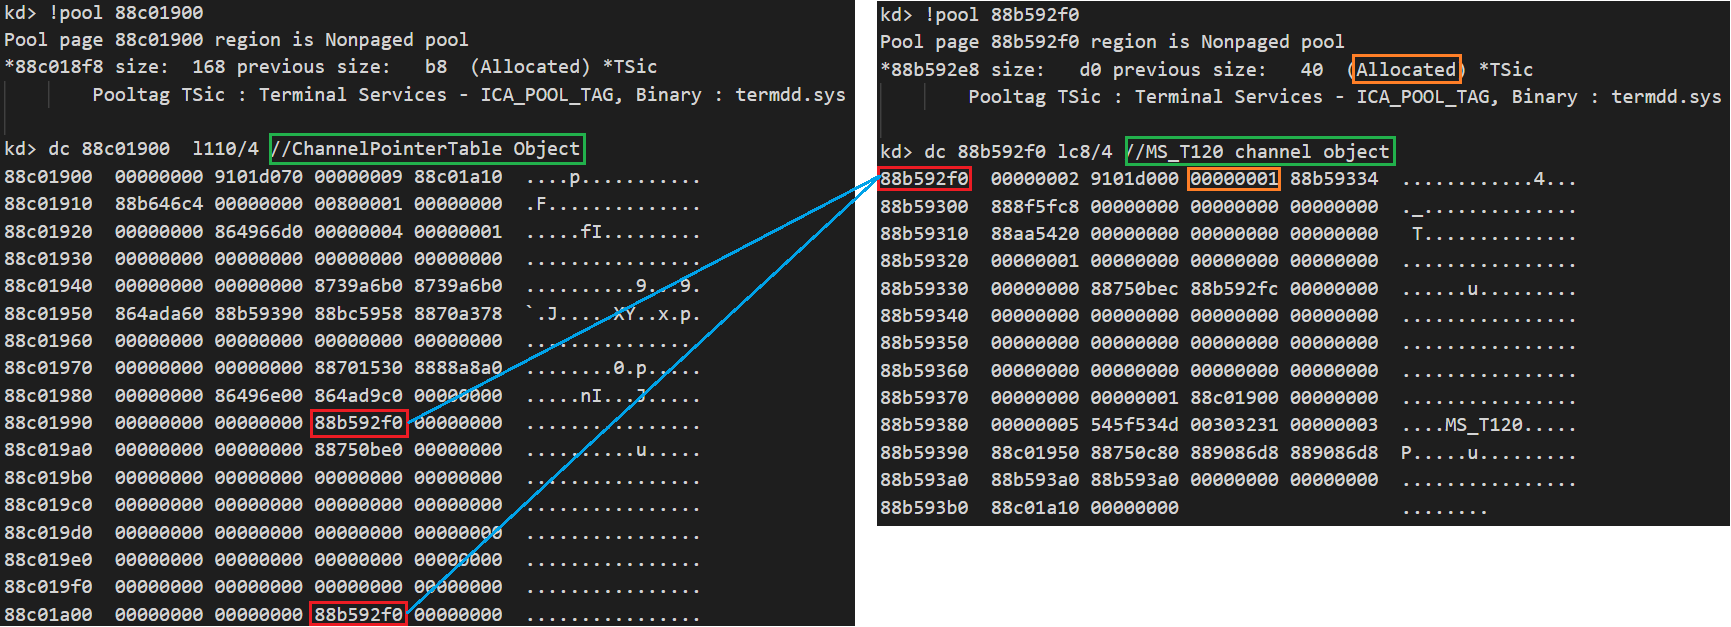 "These screenshots show that there are two ""MS_T120"" channel object references in the ChannelPointerTable object."